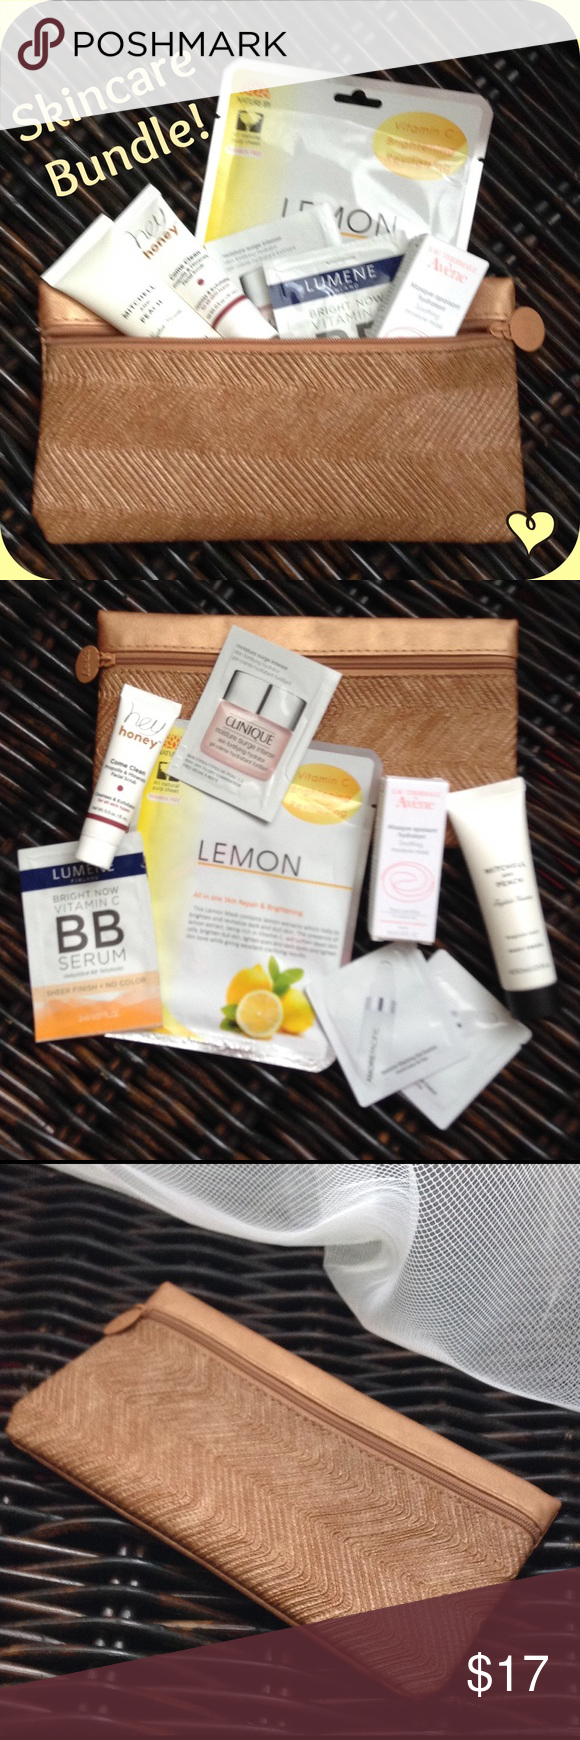 PRICE DROP FreshFace Skincare Bundle! All new & unused